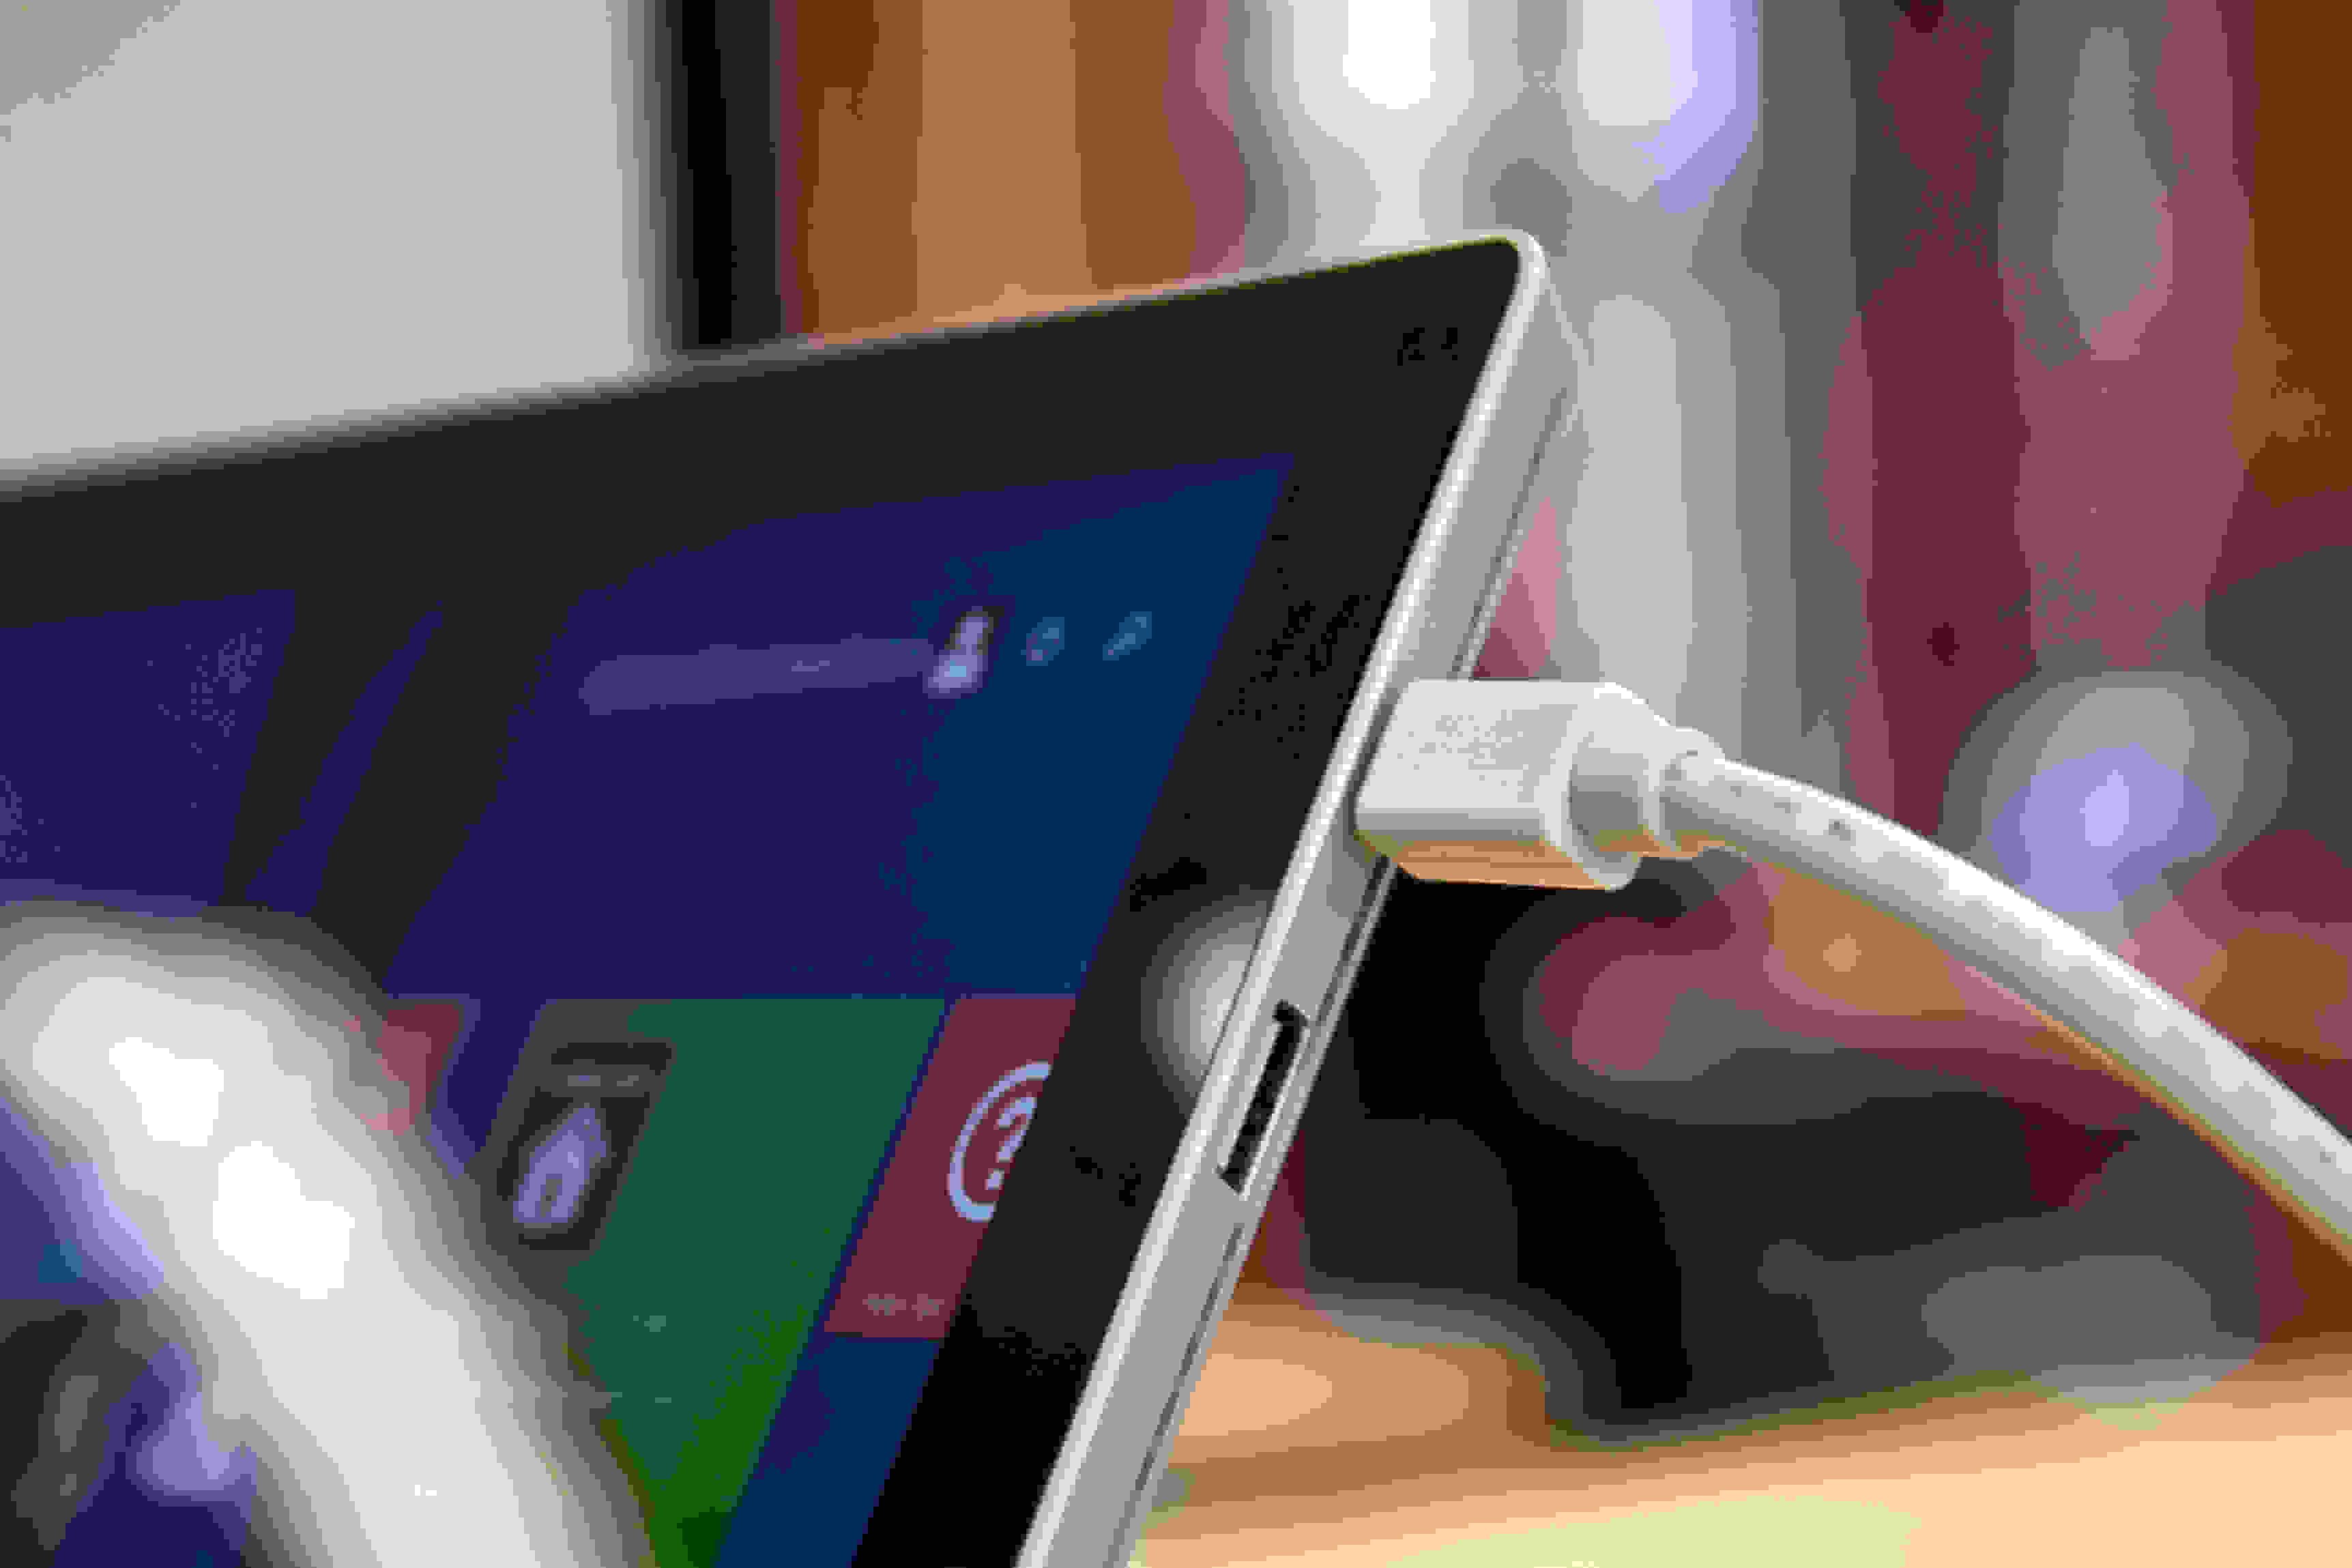 A closer look at the Microsoft Surface Pro 3's mini displayport.